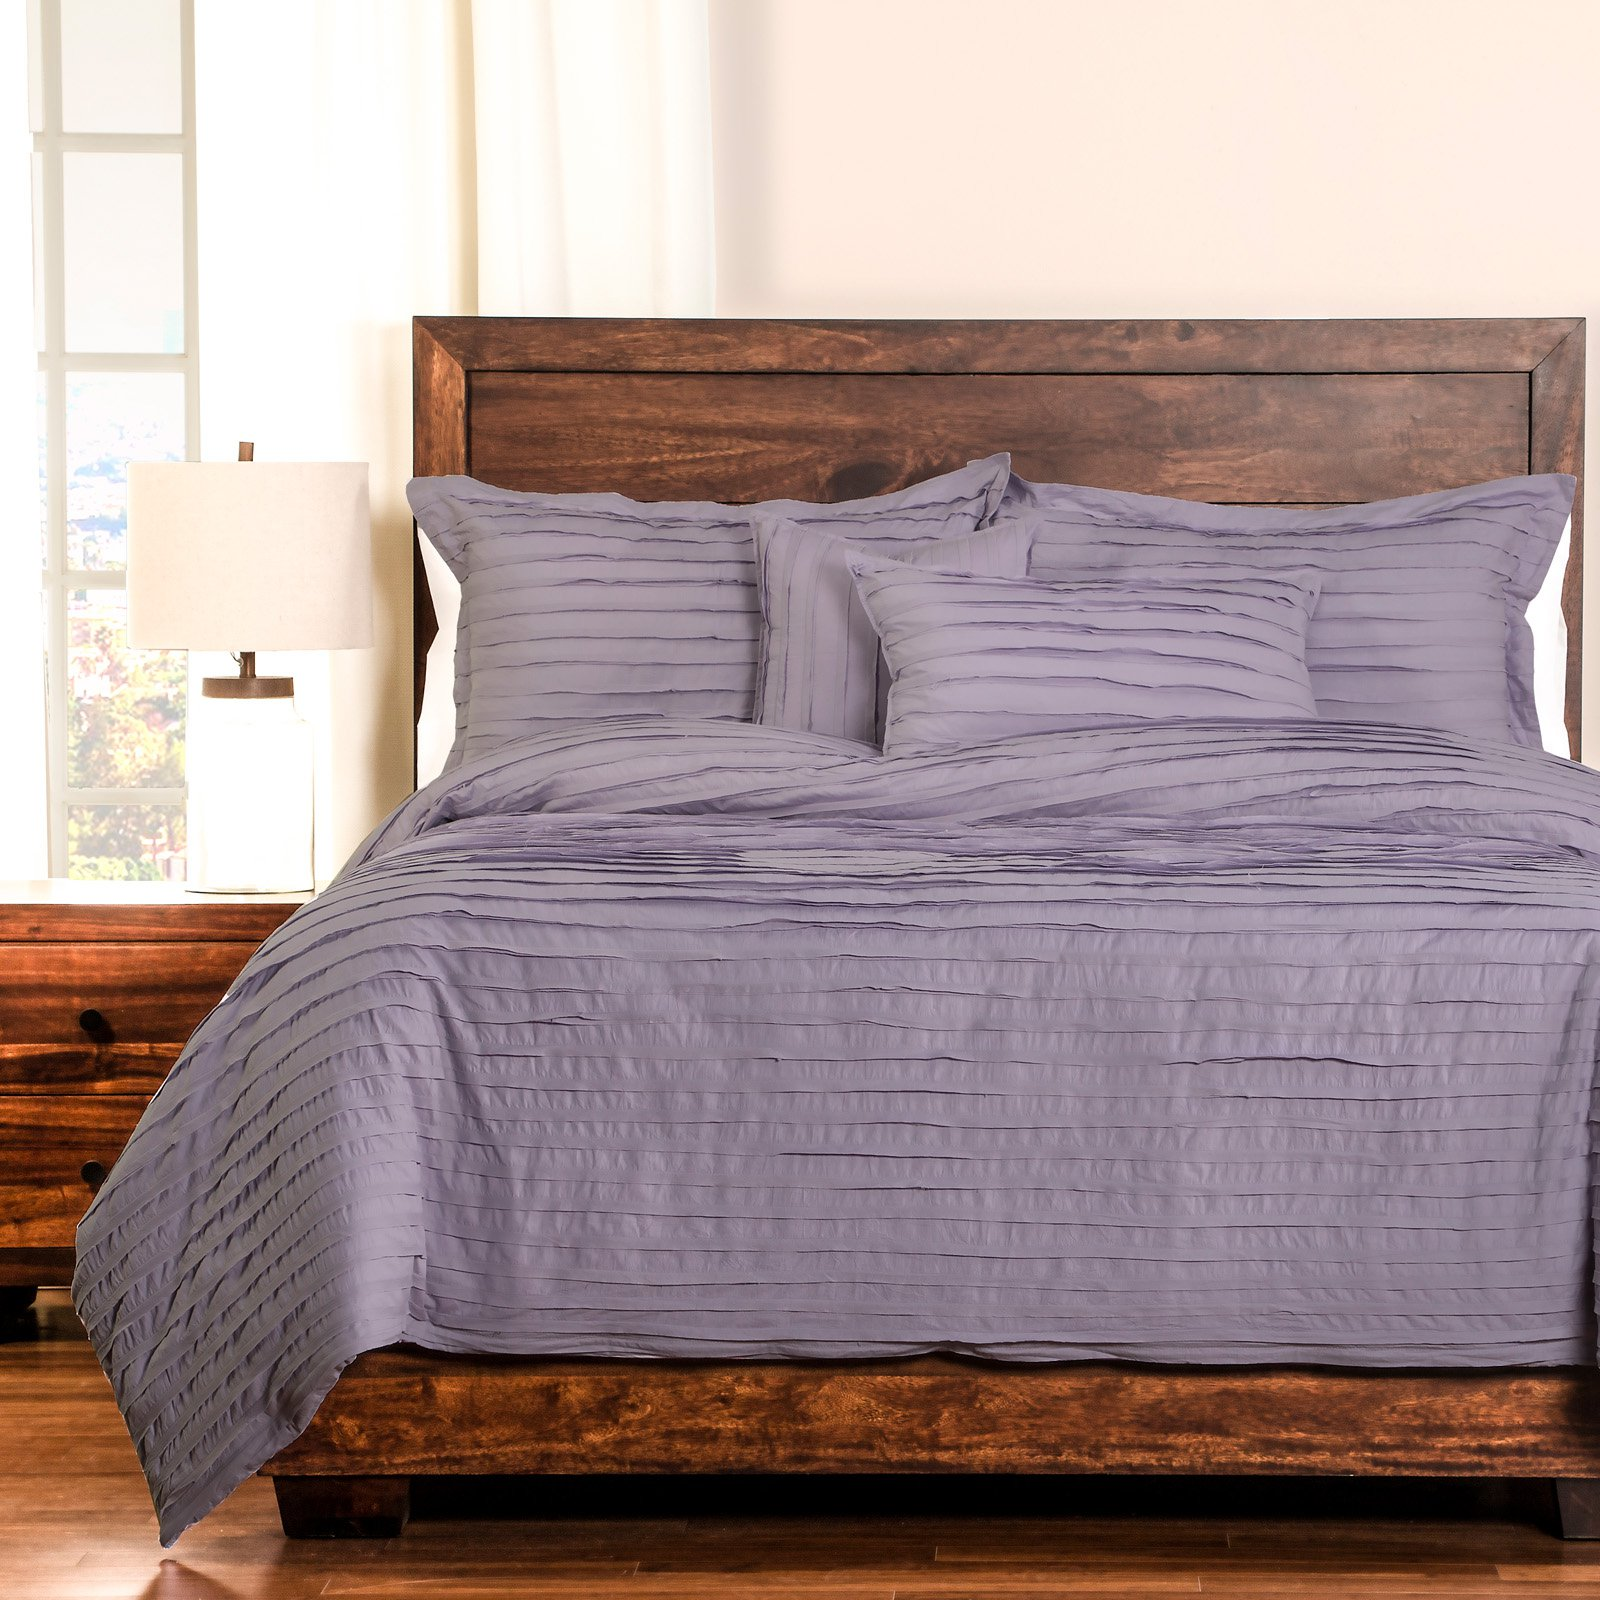 Tattered Duvet Set by Siscovers